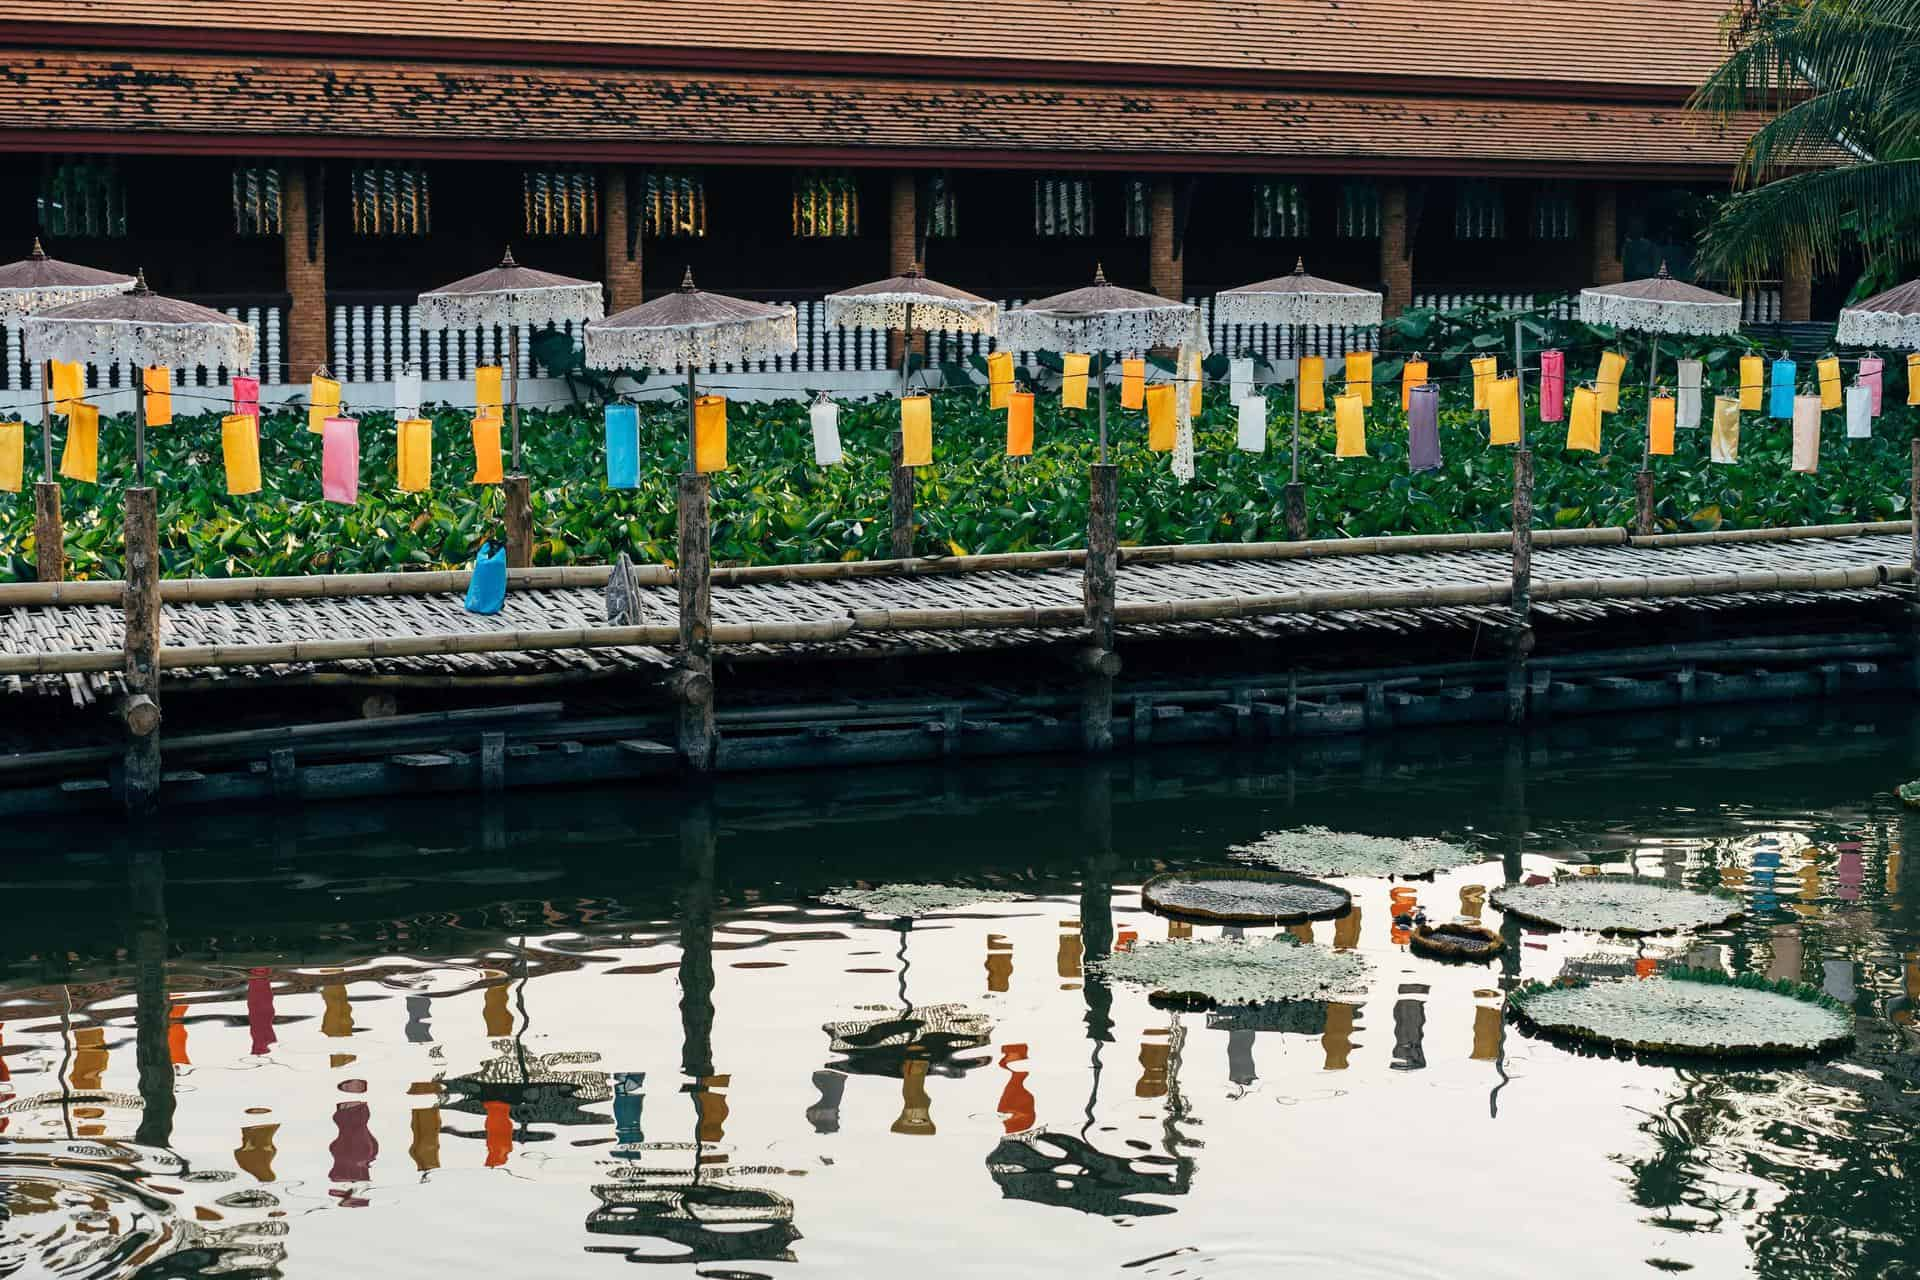 Lanterns reflected in the water